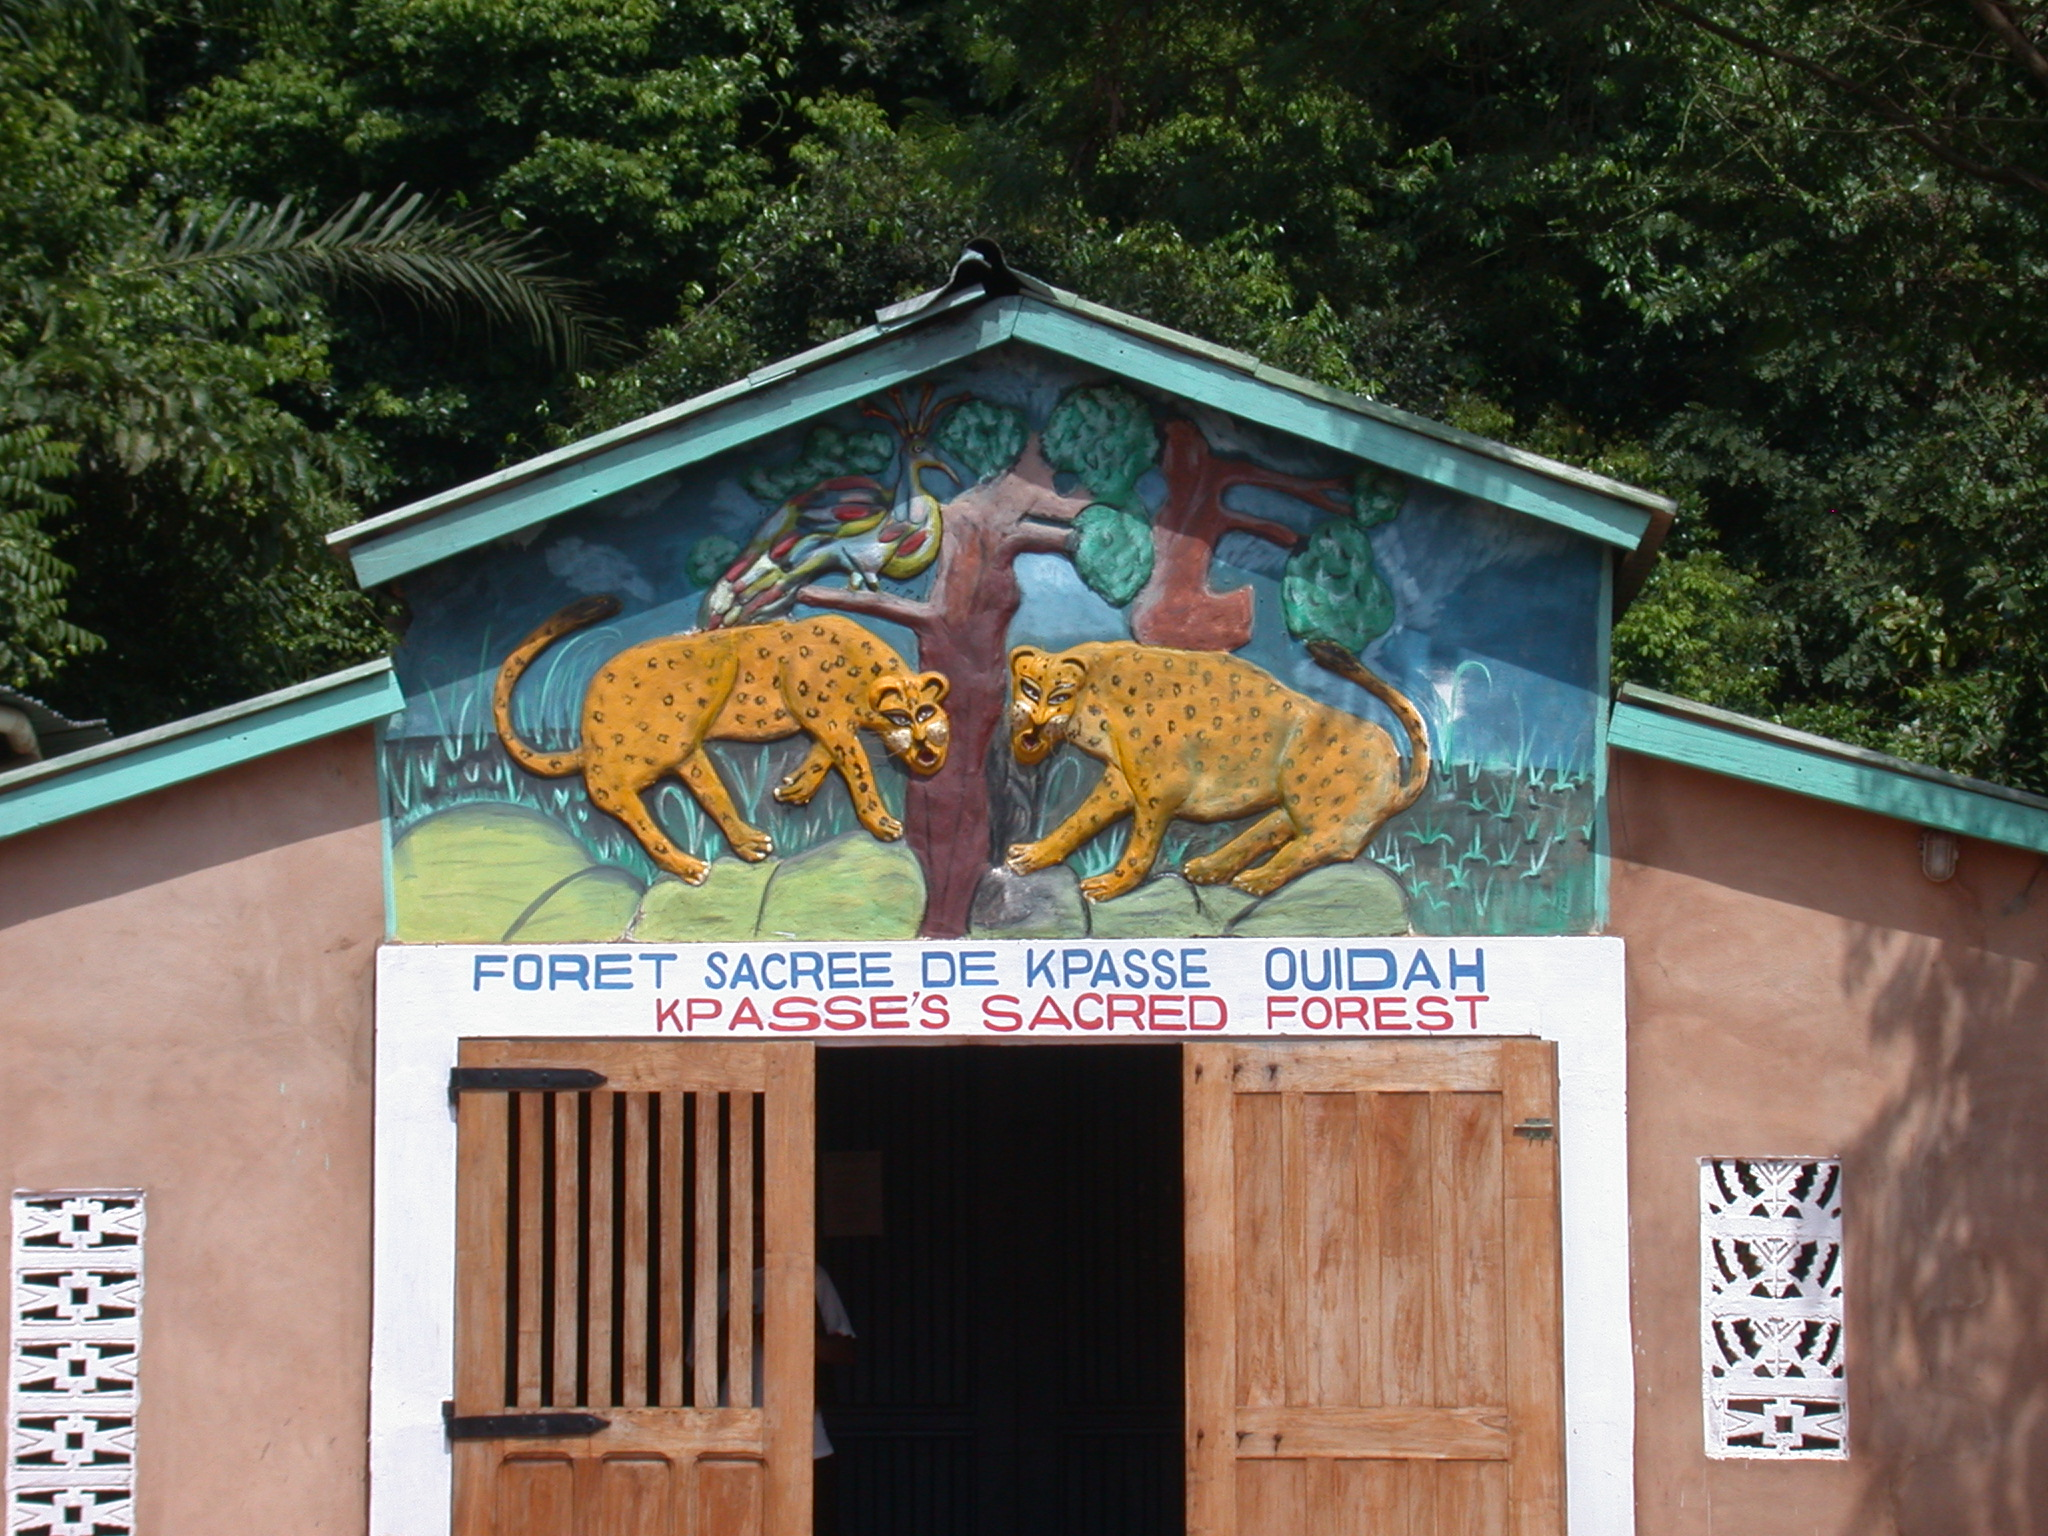 Entrance of Kpasse Sacred Forest, Ouidah, Benin